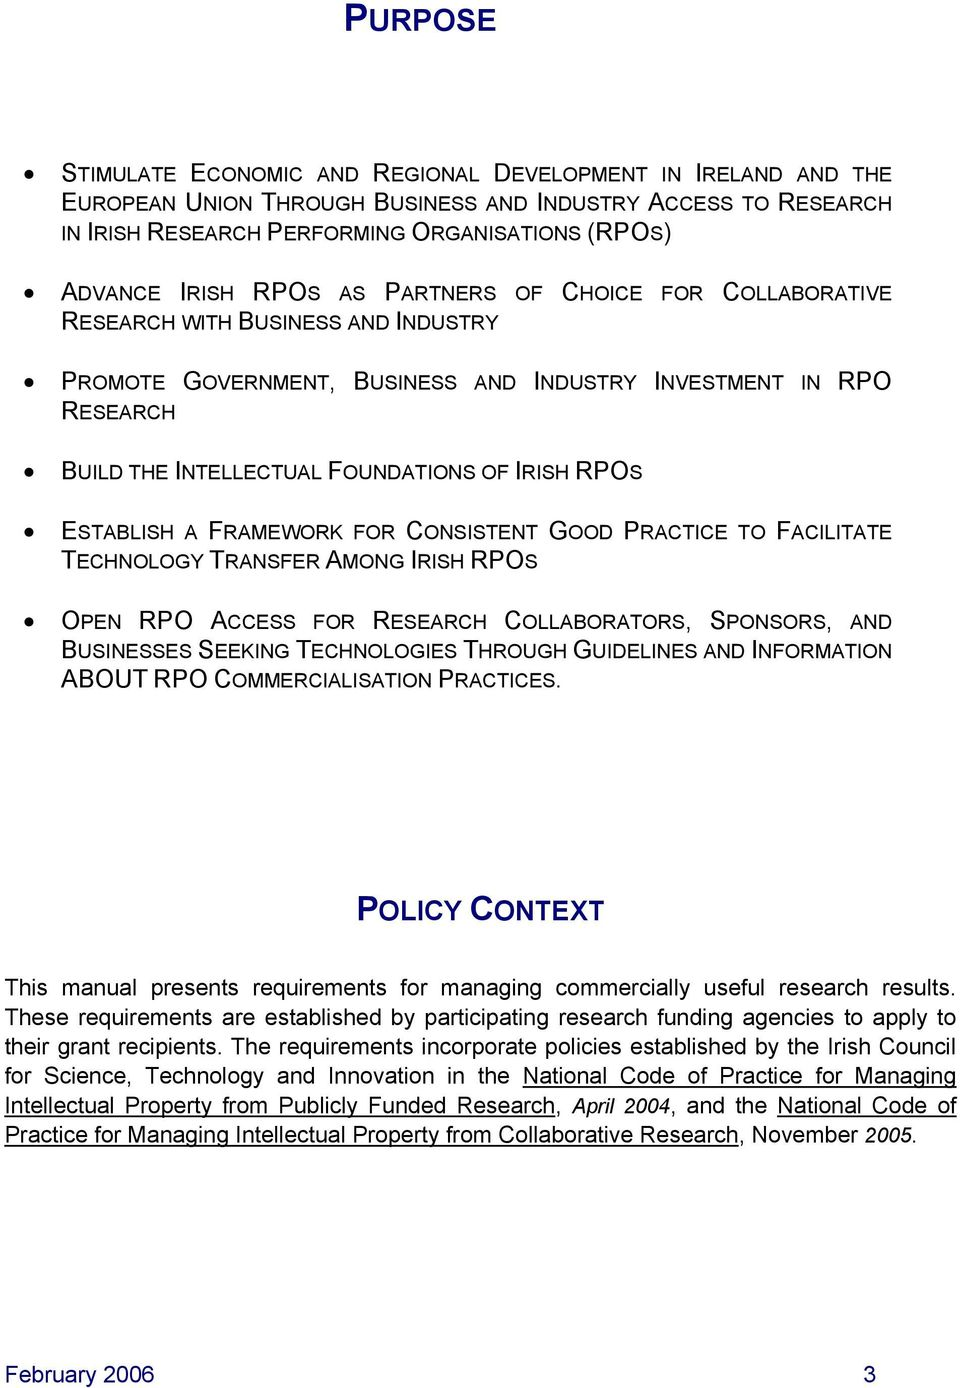 ESTABLISH A FRAMEWORK FOR CONSISTENT GOOD PRACTICE TO FACILITATE TECHNOLOGY TRANSFERAMONG IRISH RPOS OPEN RPO ACCESS FOR RESEARCH COLLABORATORS, SPONSORS, AND BUSINESSESSEEKING TECHNOLOGIESTHROUGH